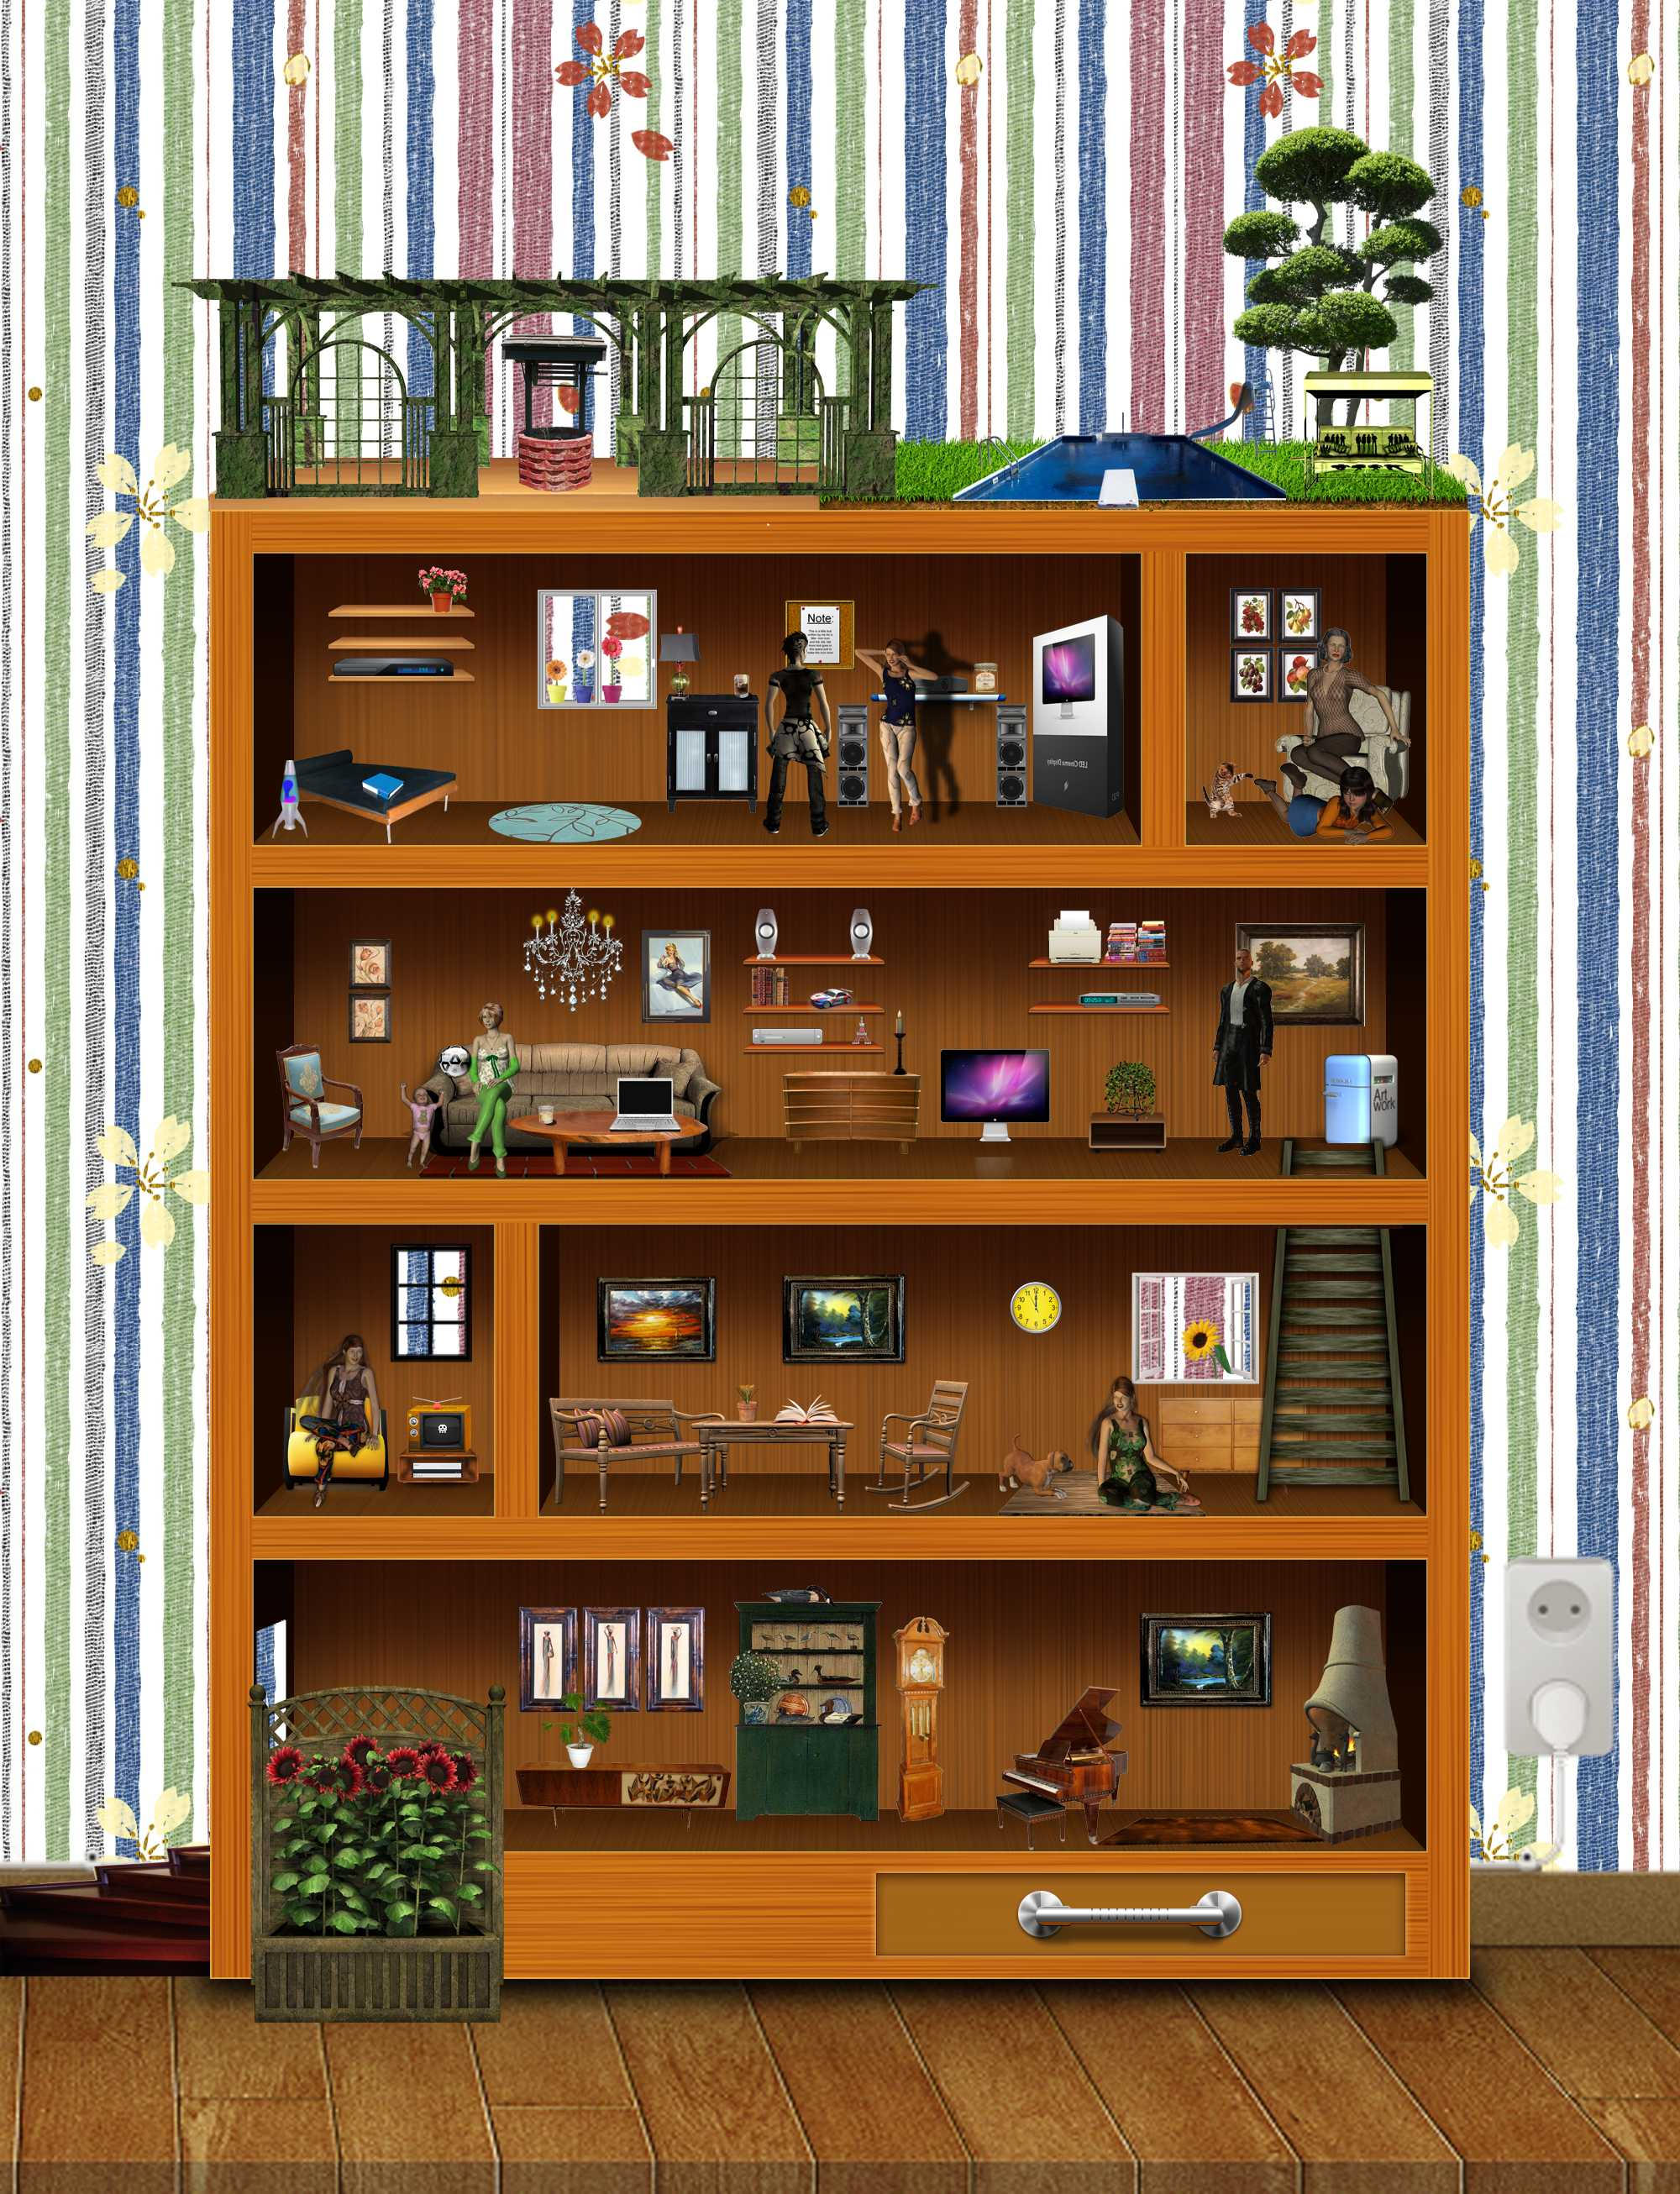 Amazing photo of living in a bookshelf by goazilla on DeviantArt with #B56316 color and 2000x2612 pixels